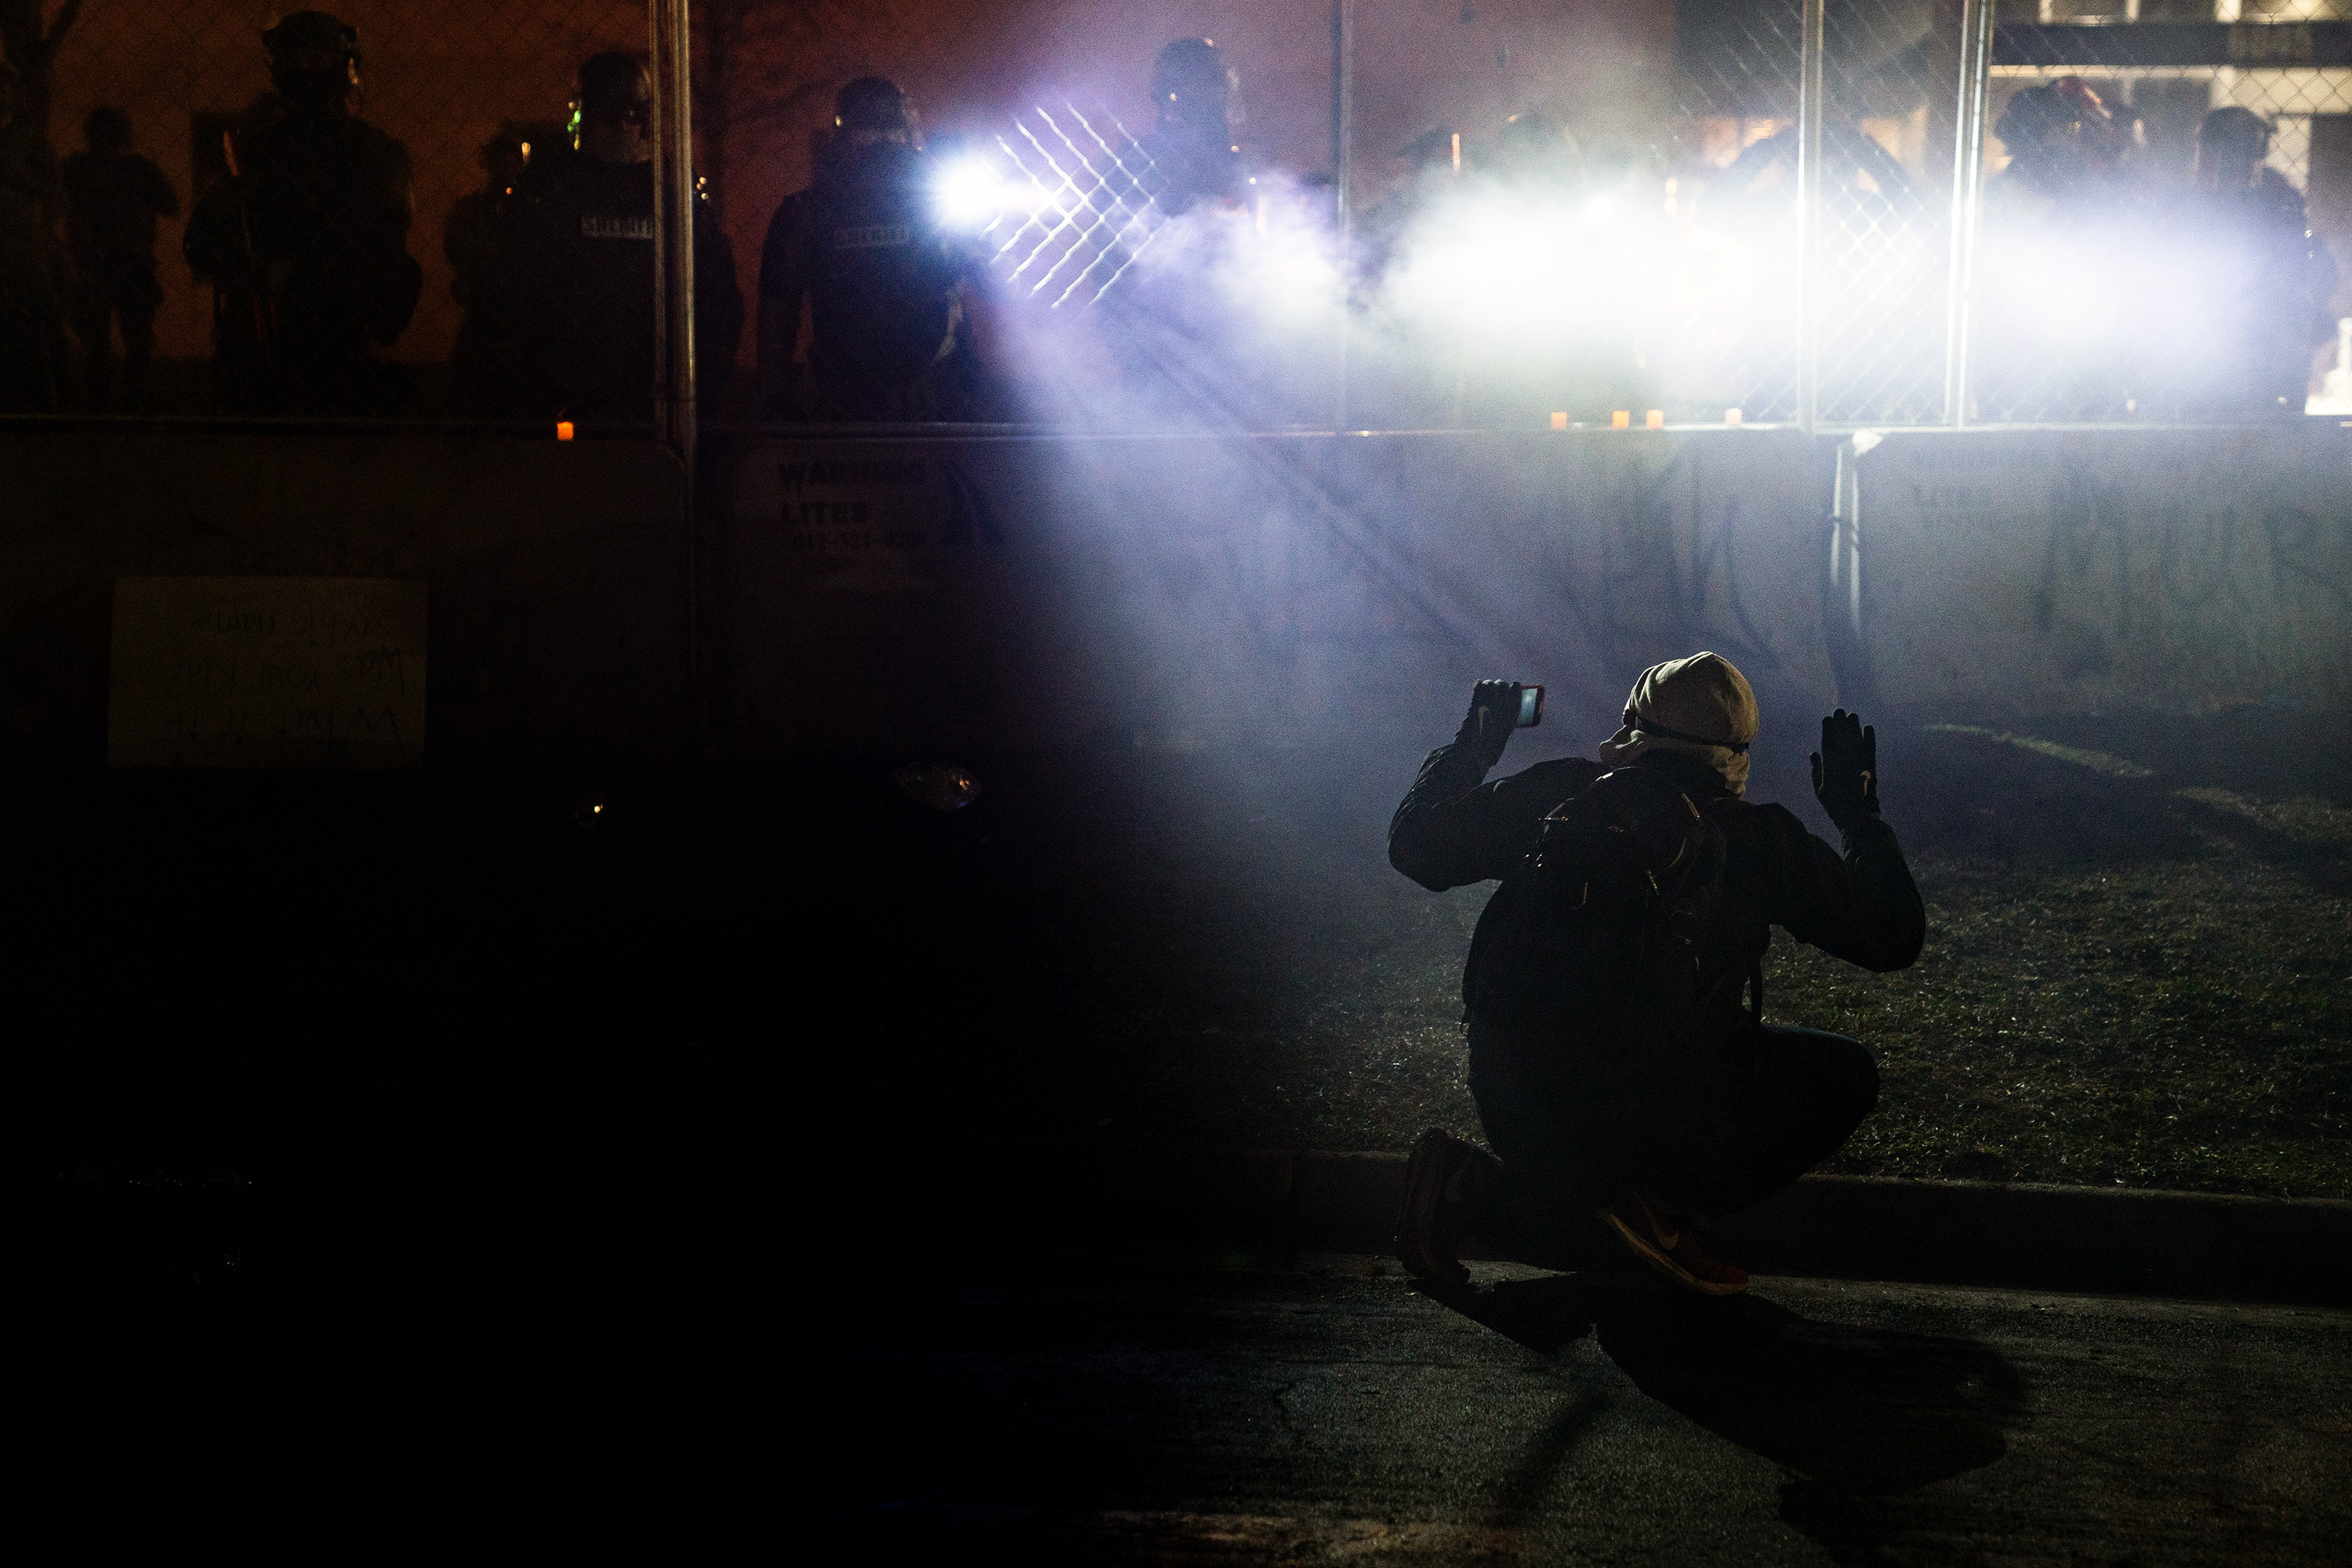 police shine bright lights on protestor filming